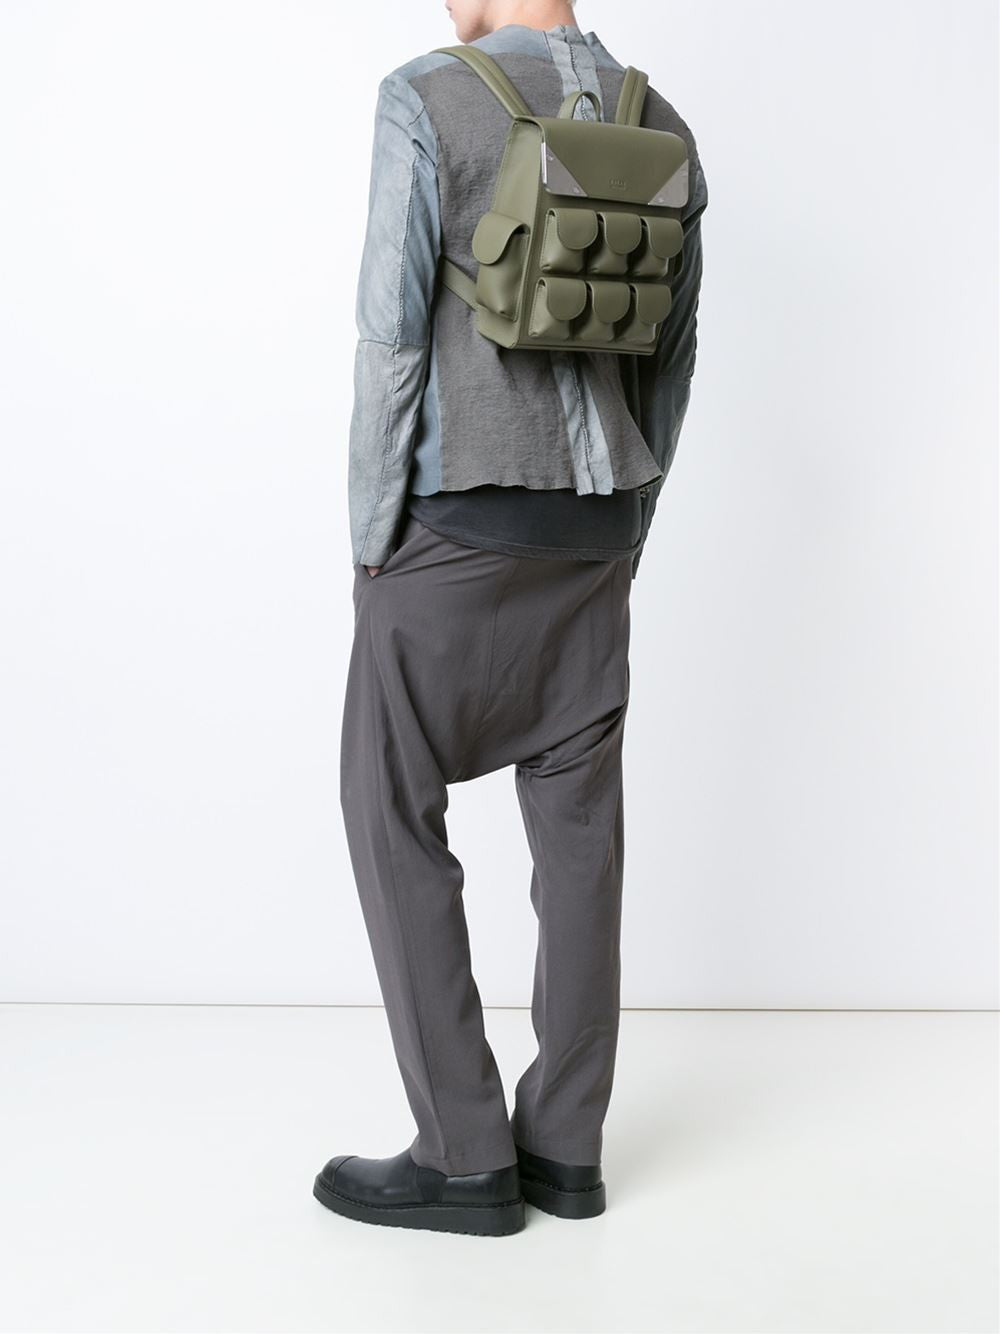 Leather 'Micro Voyager' Knapsack | VLSMO004